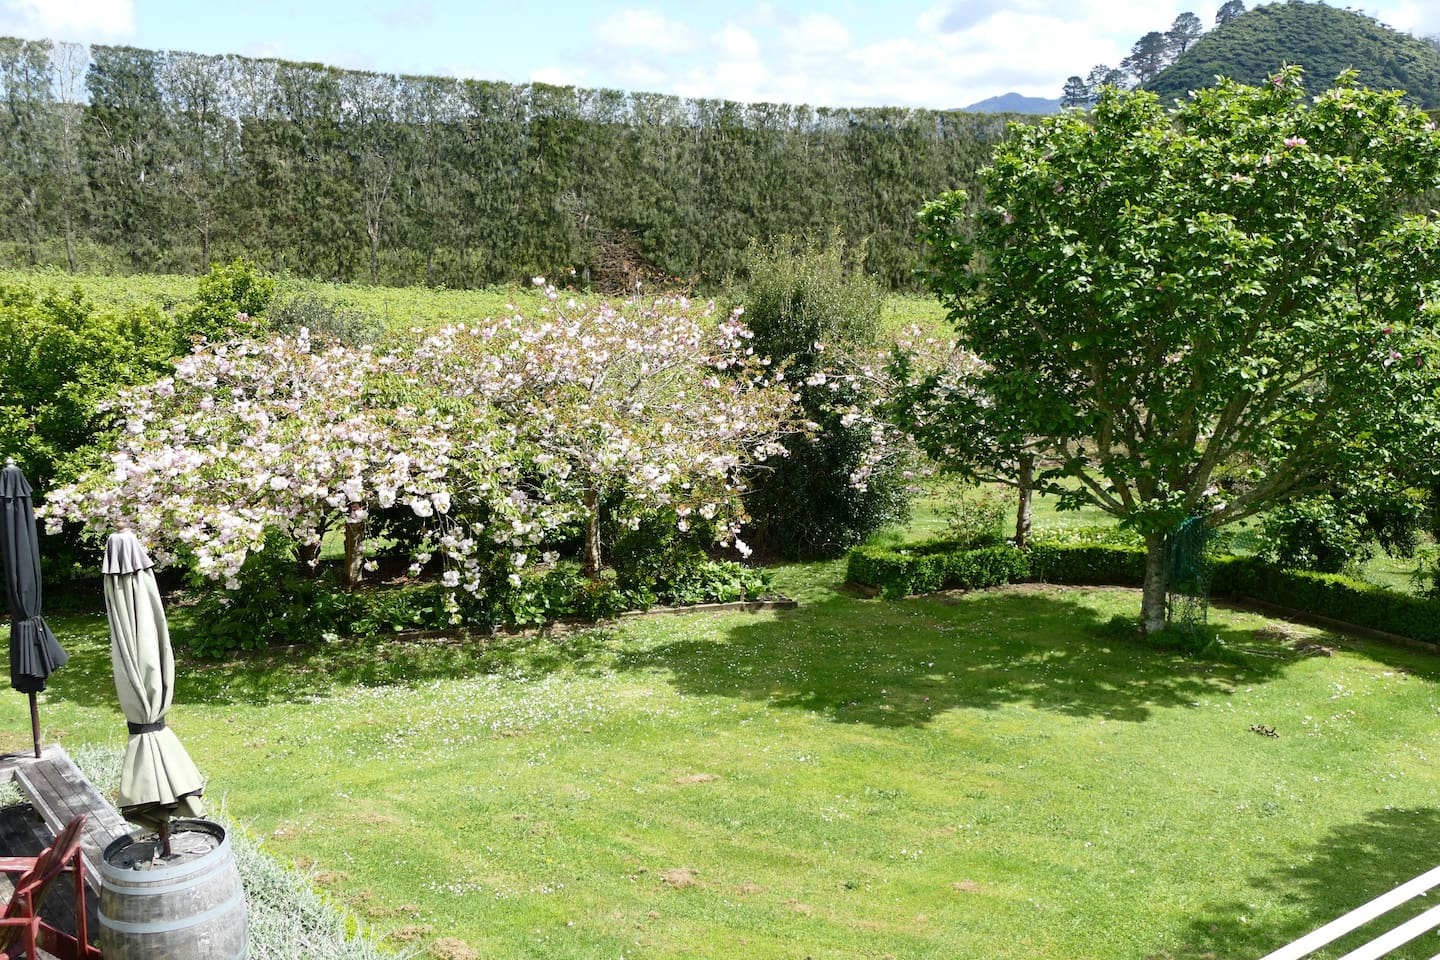 View of garden and kiwifruit orchard.